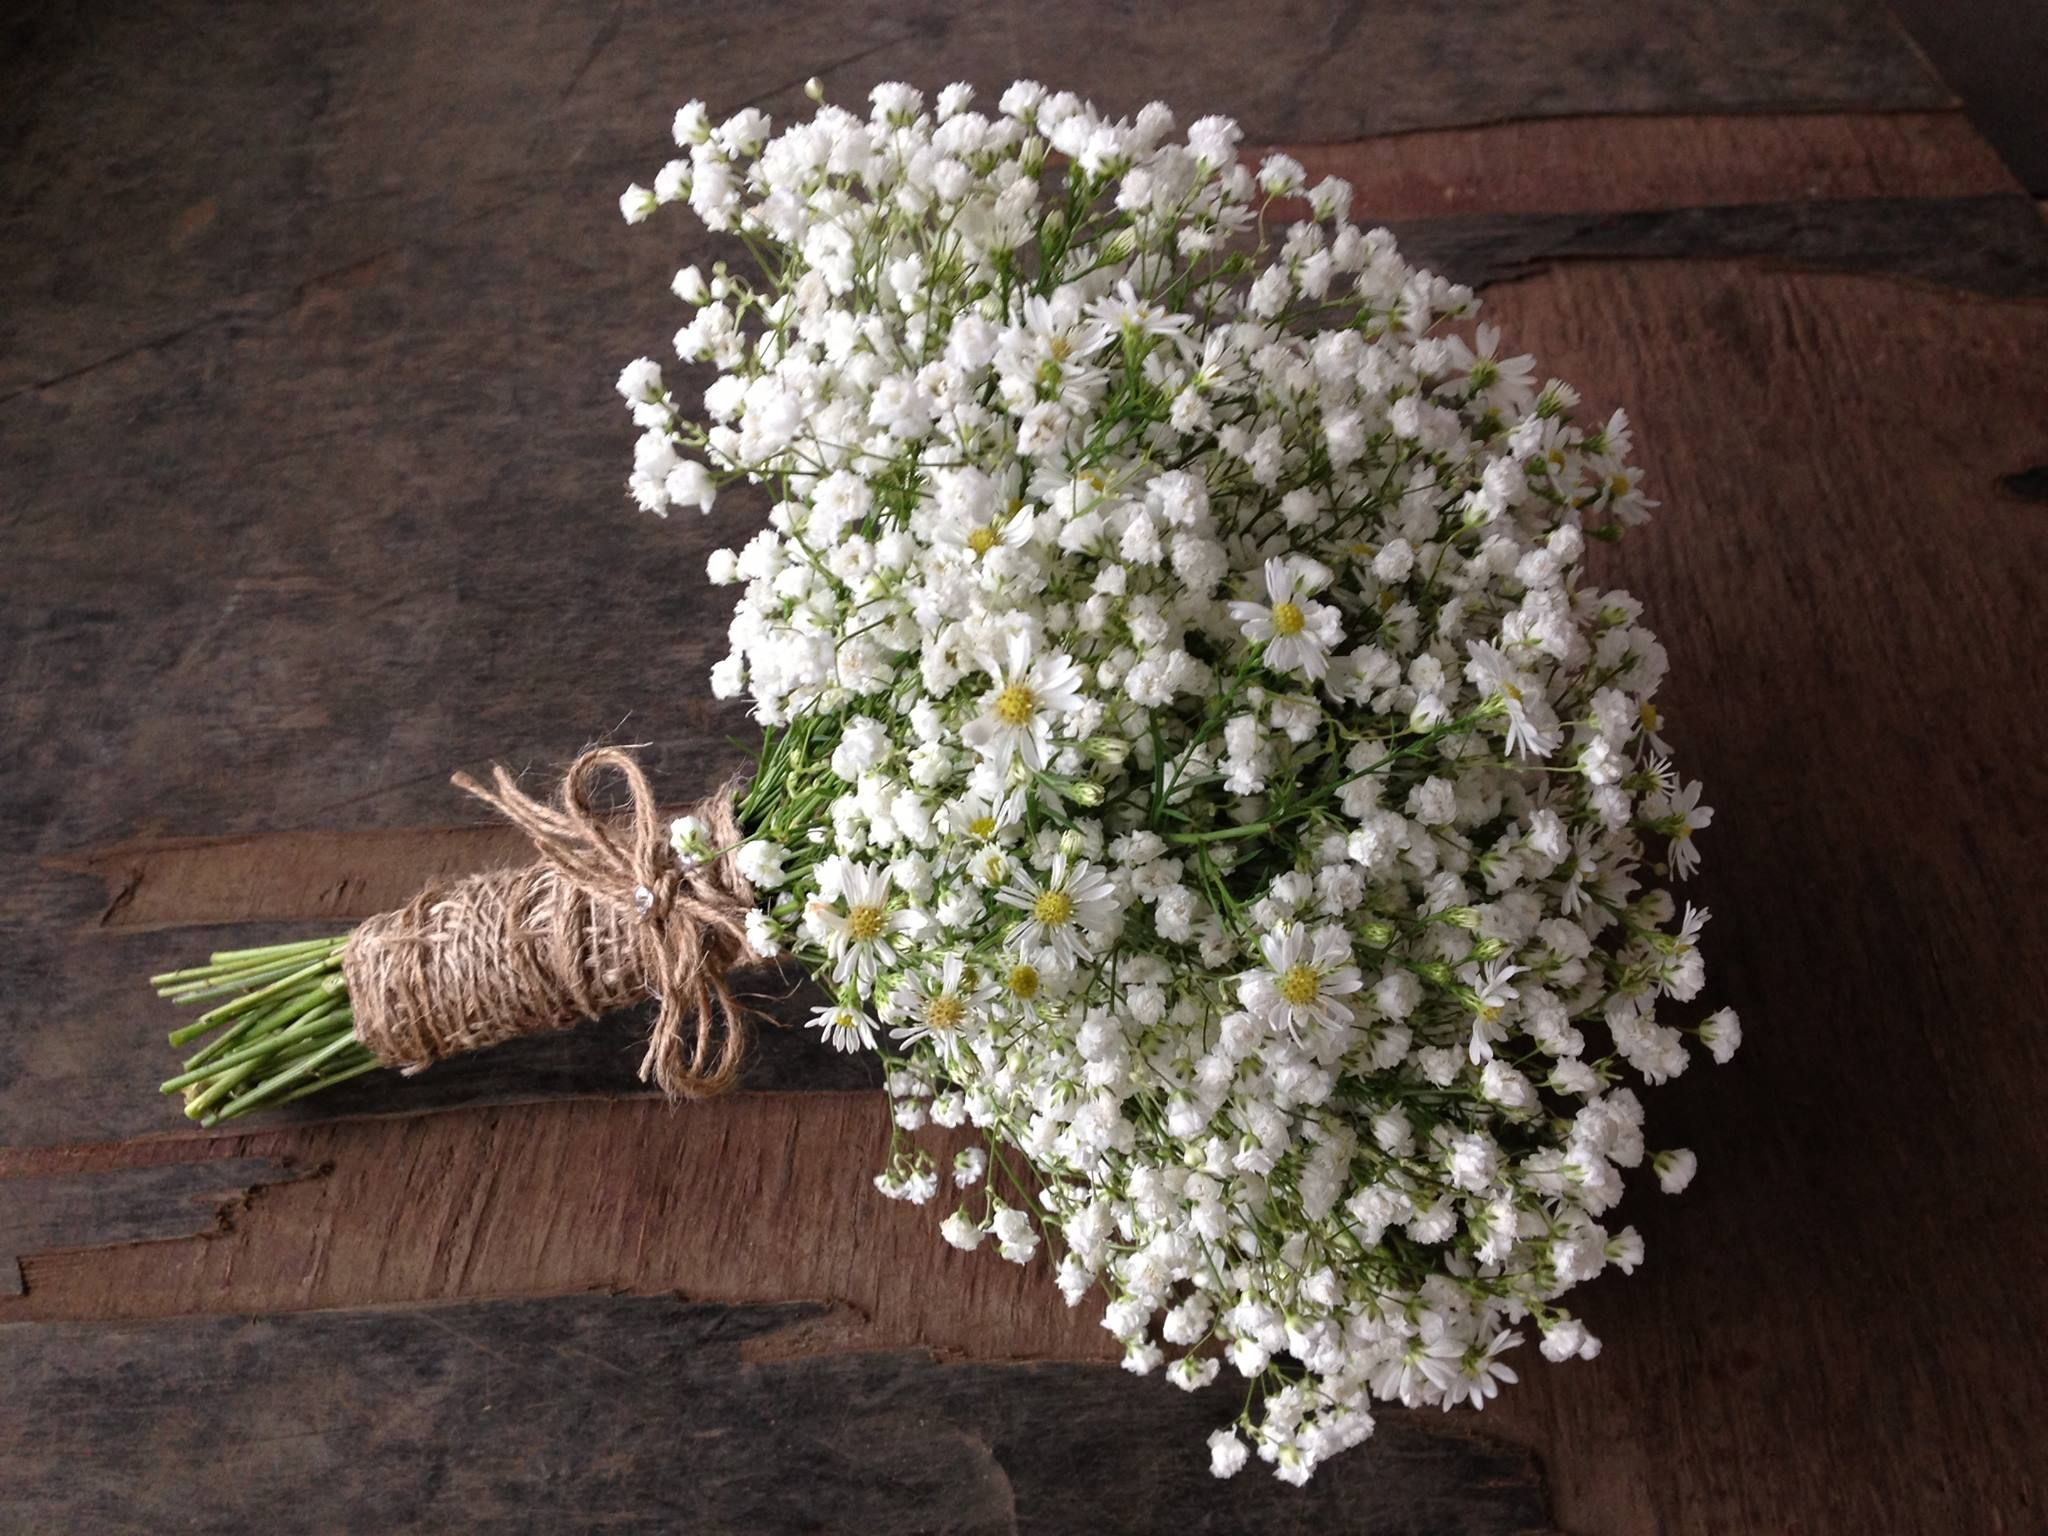 Baby S Breath Inspired Bridal Bouquet By Angie S Floral Design Thornlands Brisbane Qld Bo Hoa Hoa